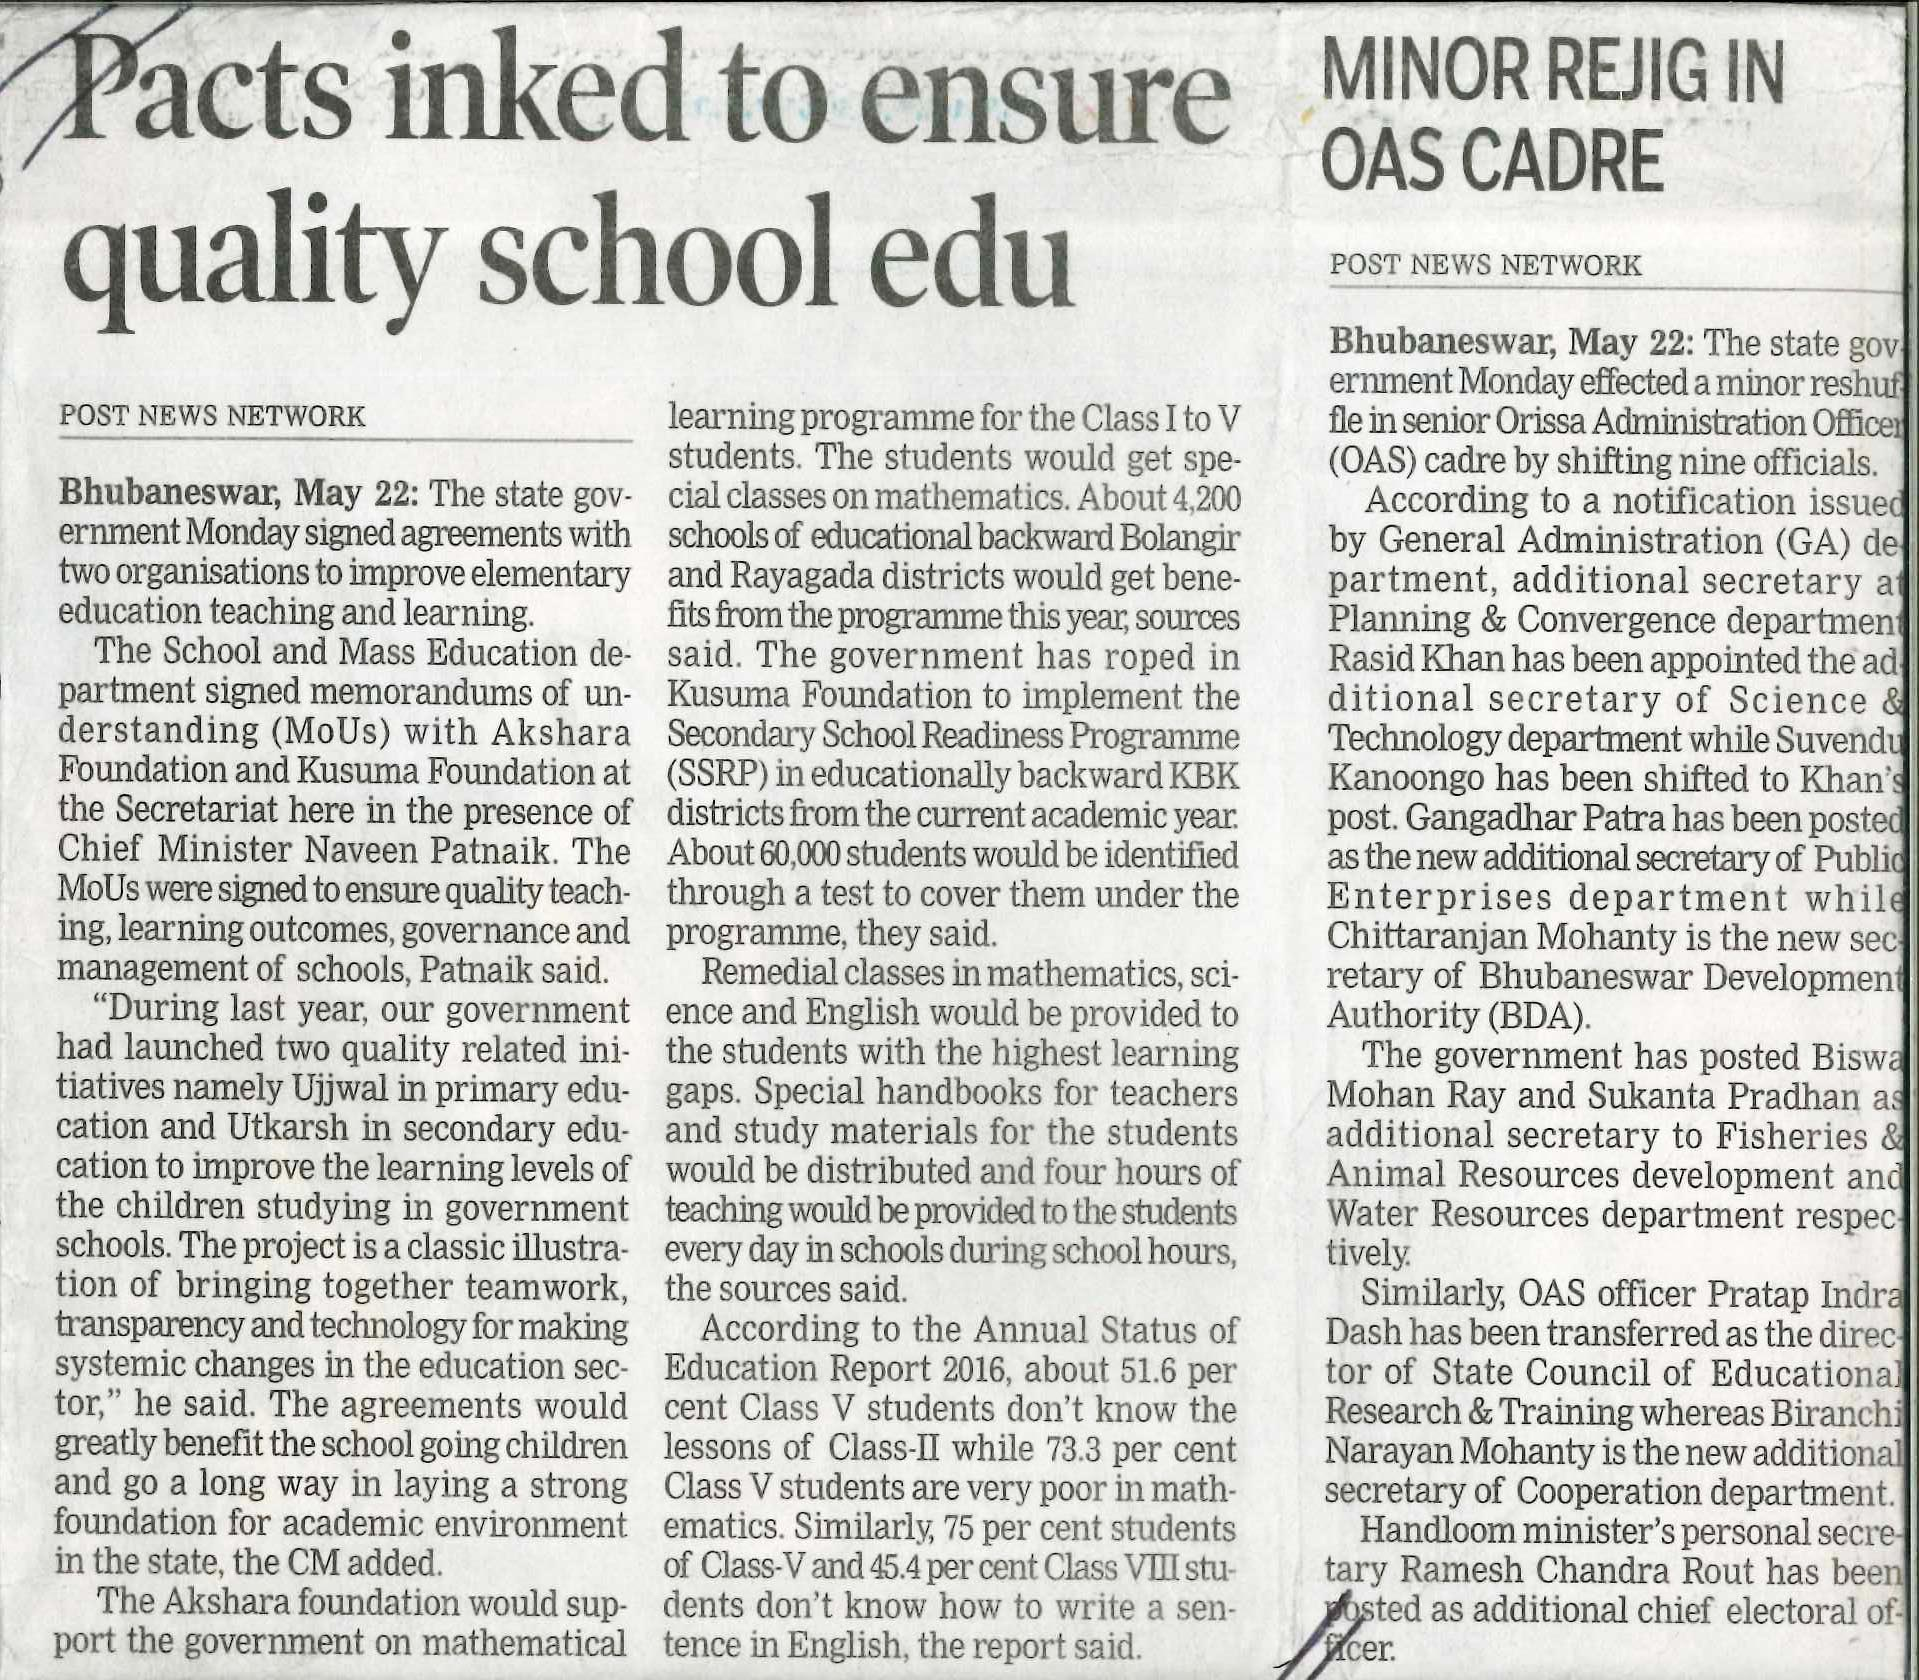 Pacts inked to ensure quality school edu